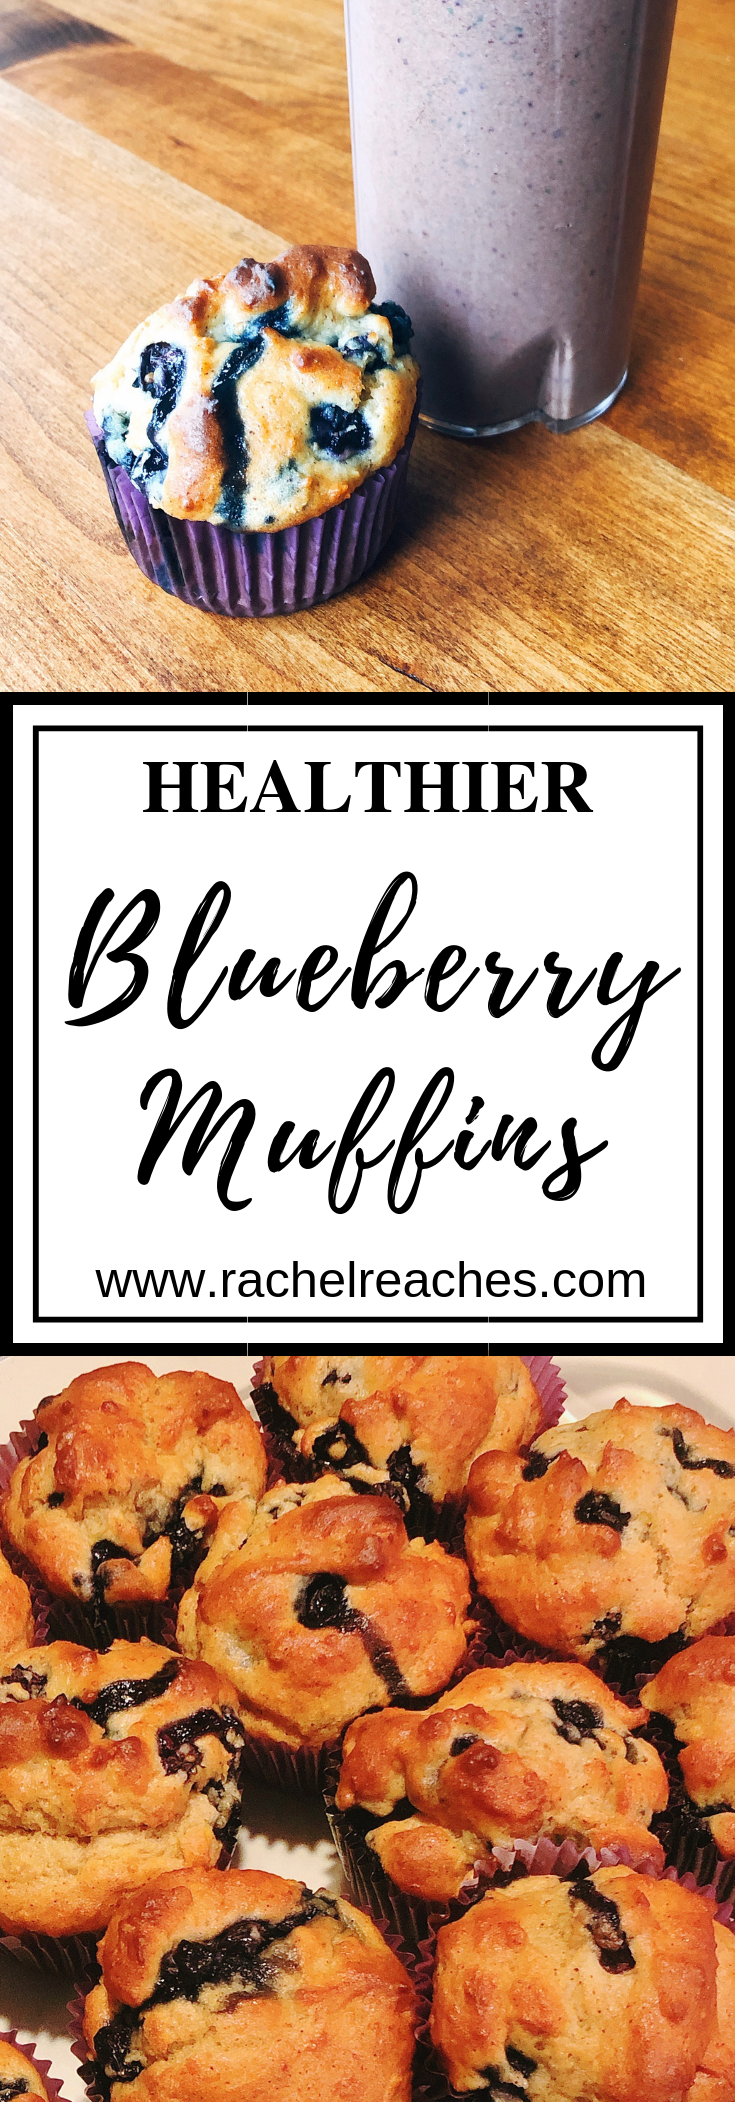 Blueberry Muffins - Healthy Eating.png